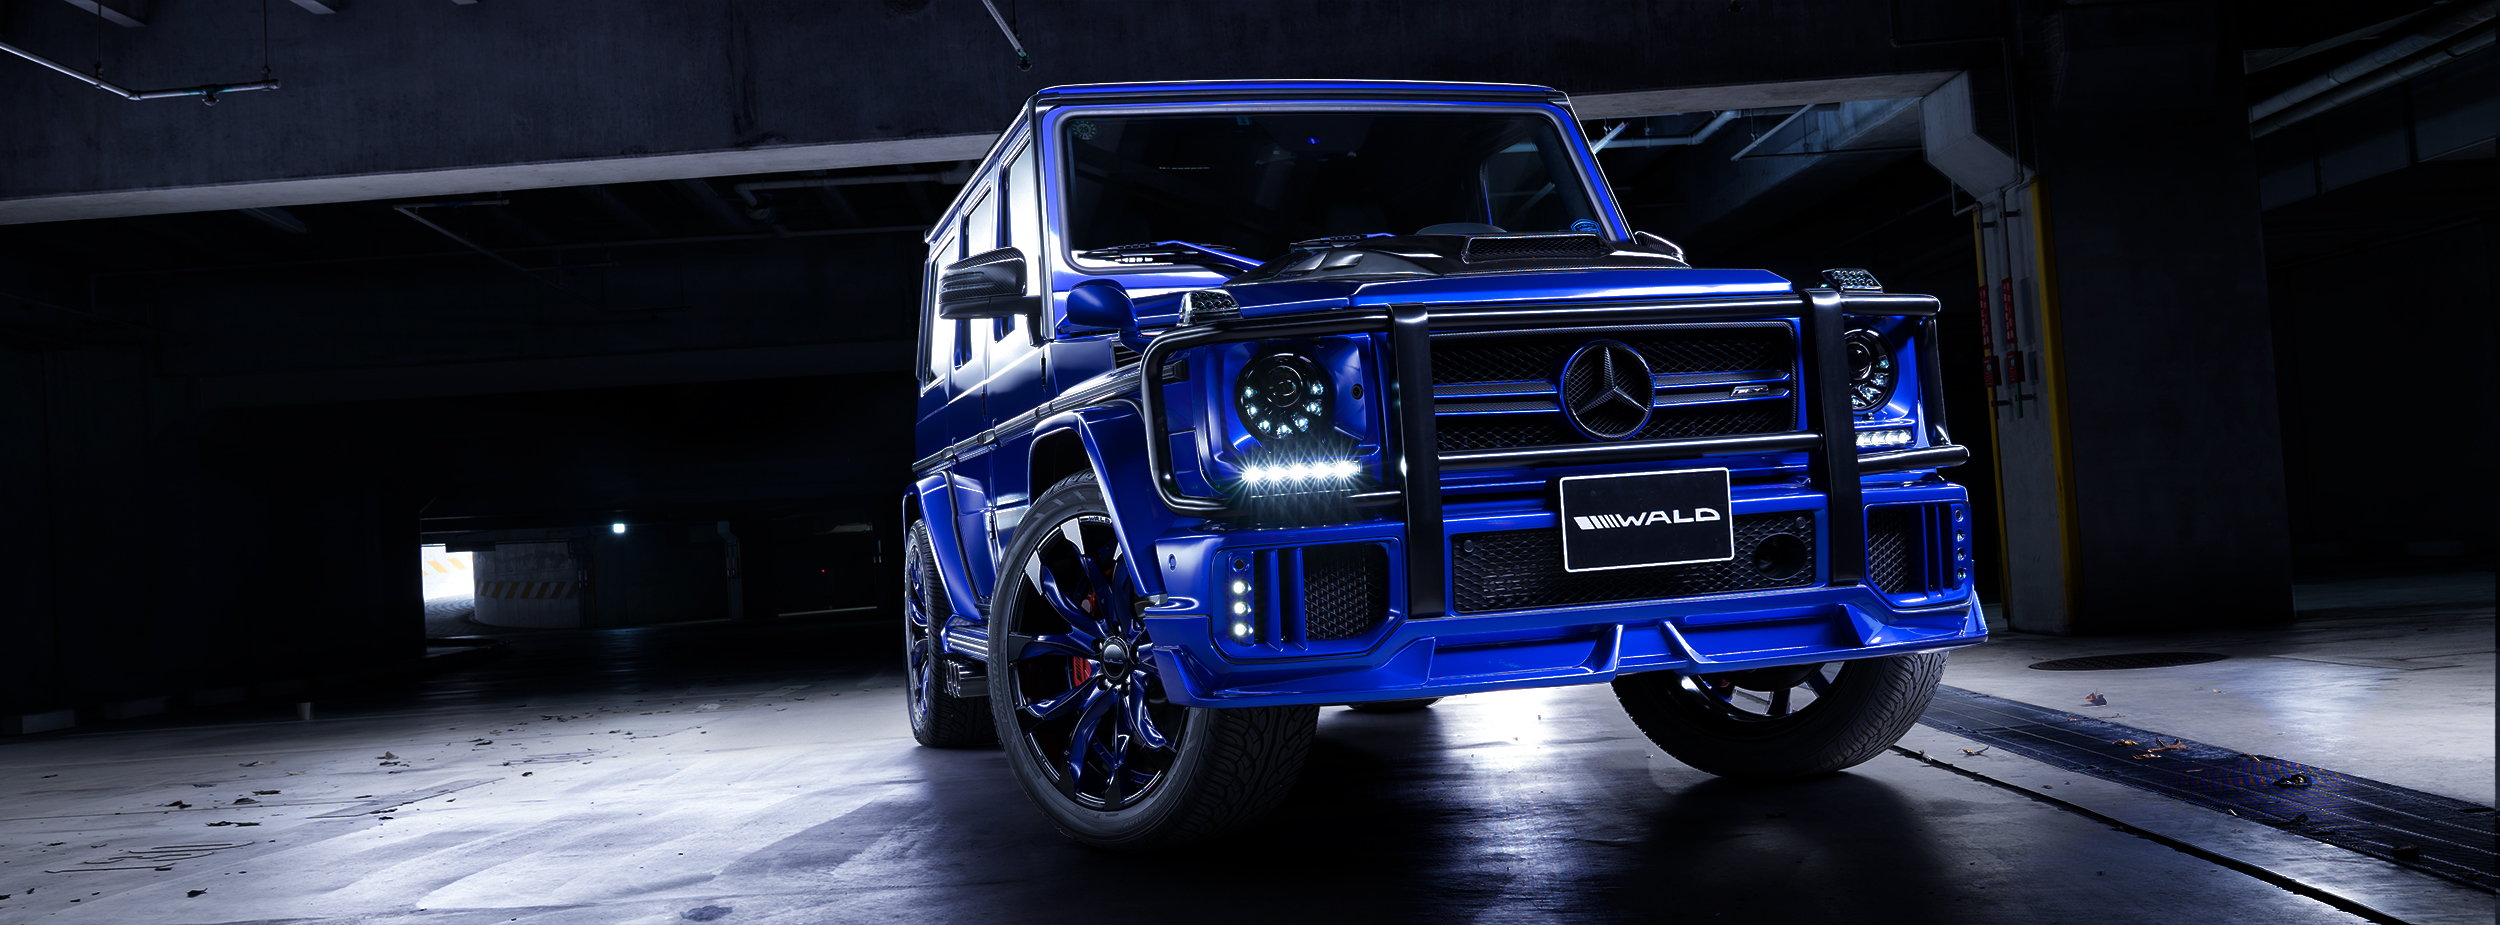 Mercedes-AMG G63 SPORTS LINE BLACK BISON EDITION